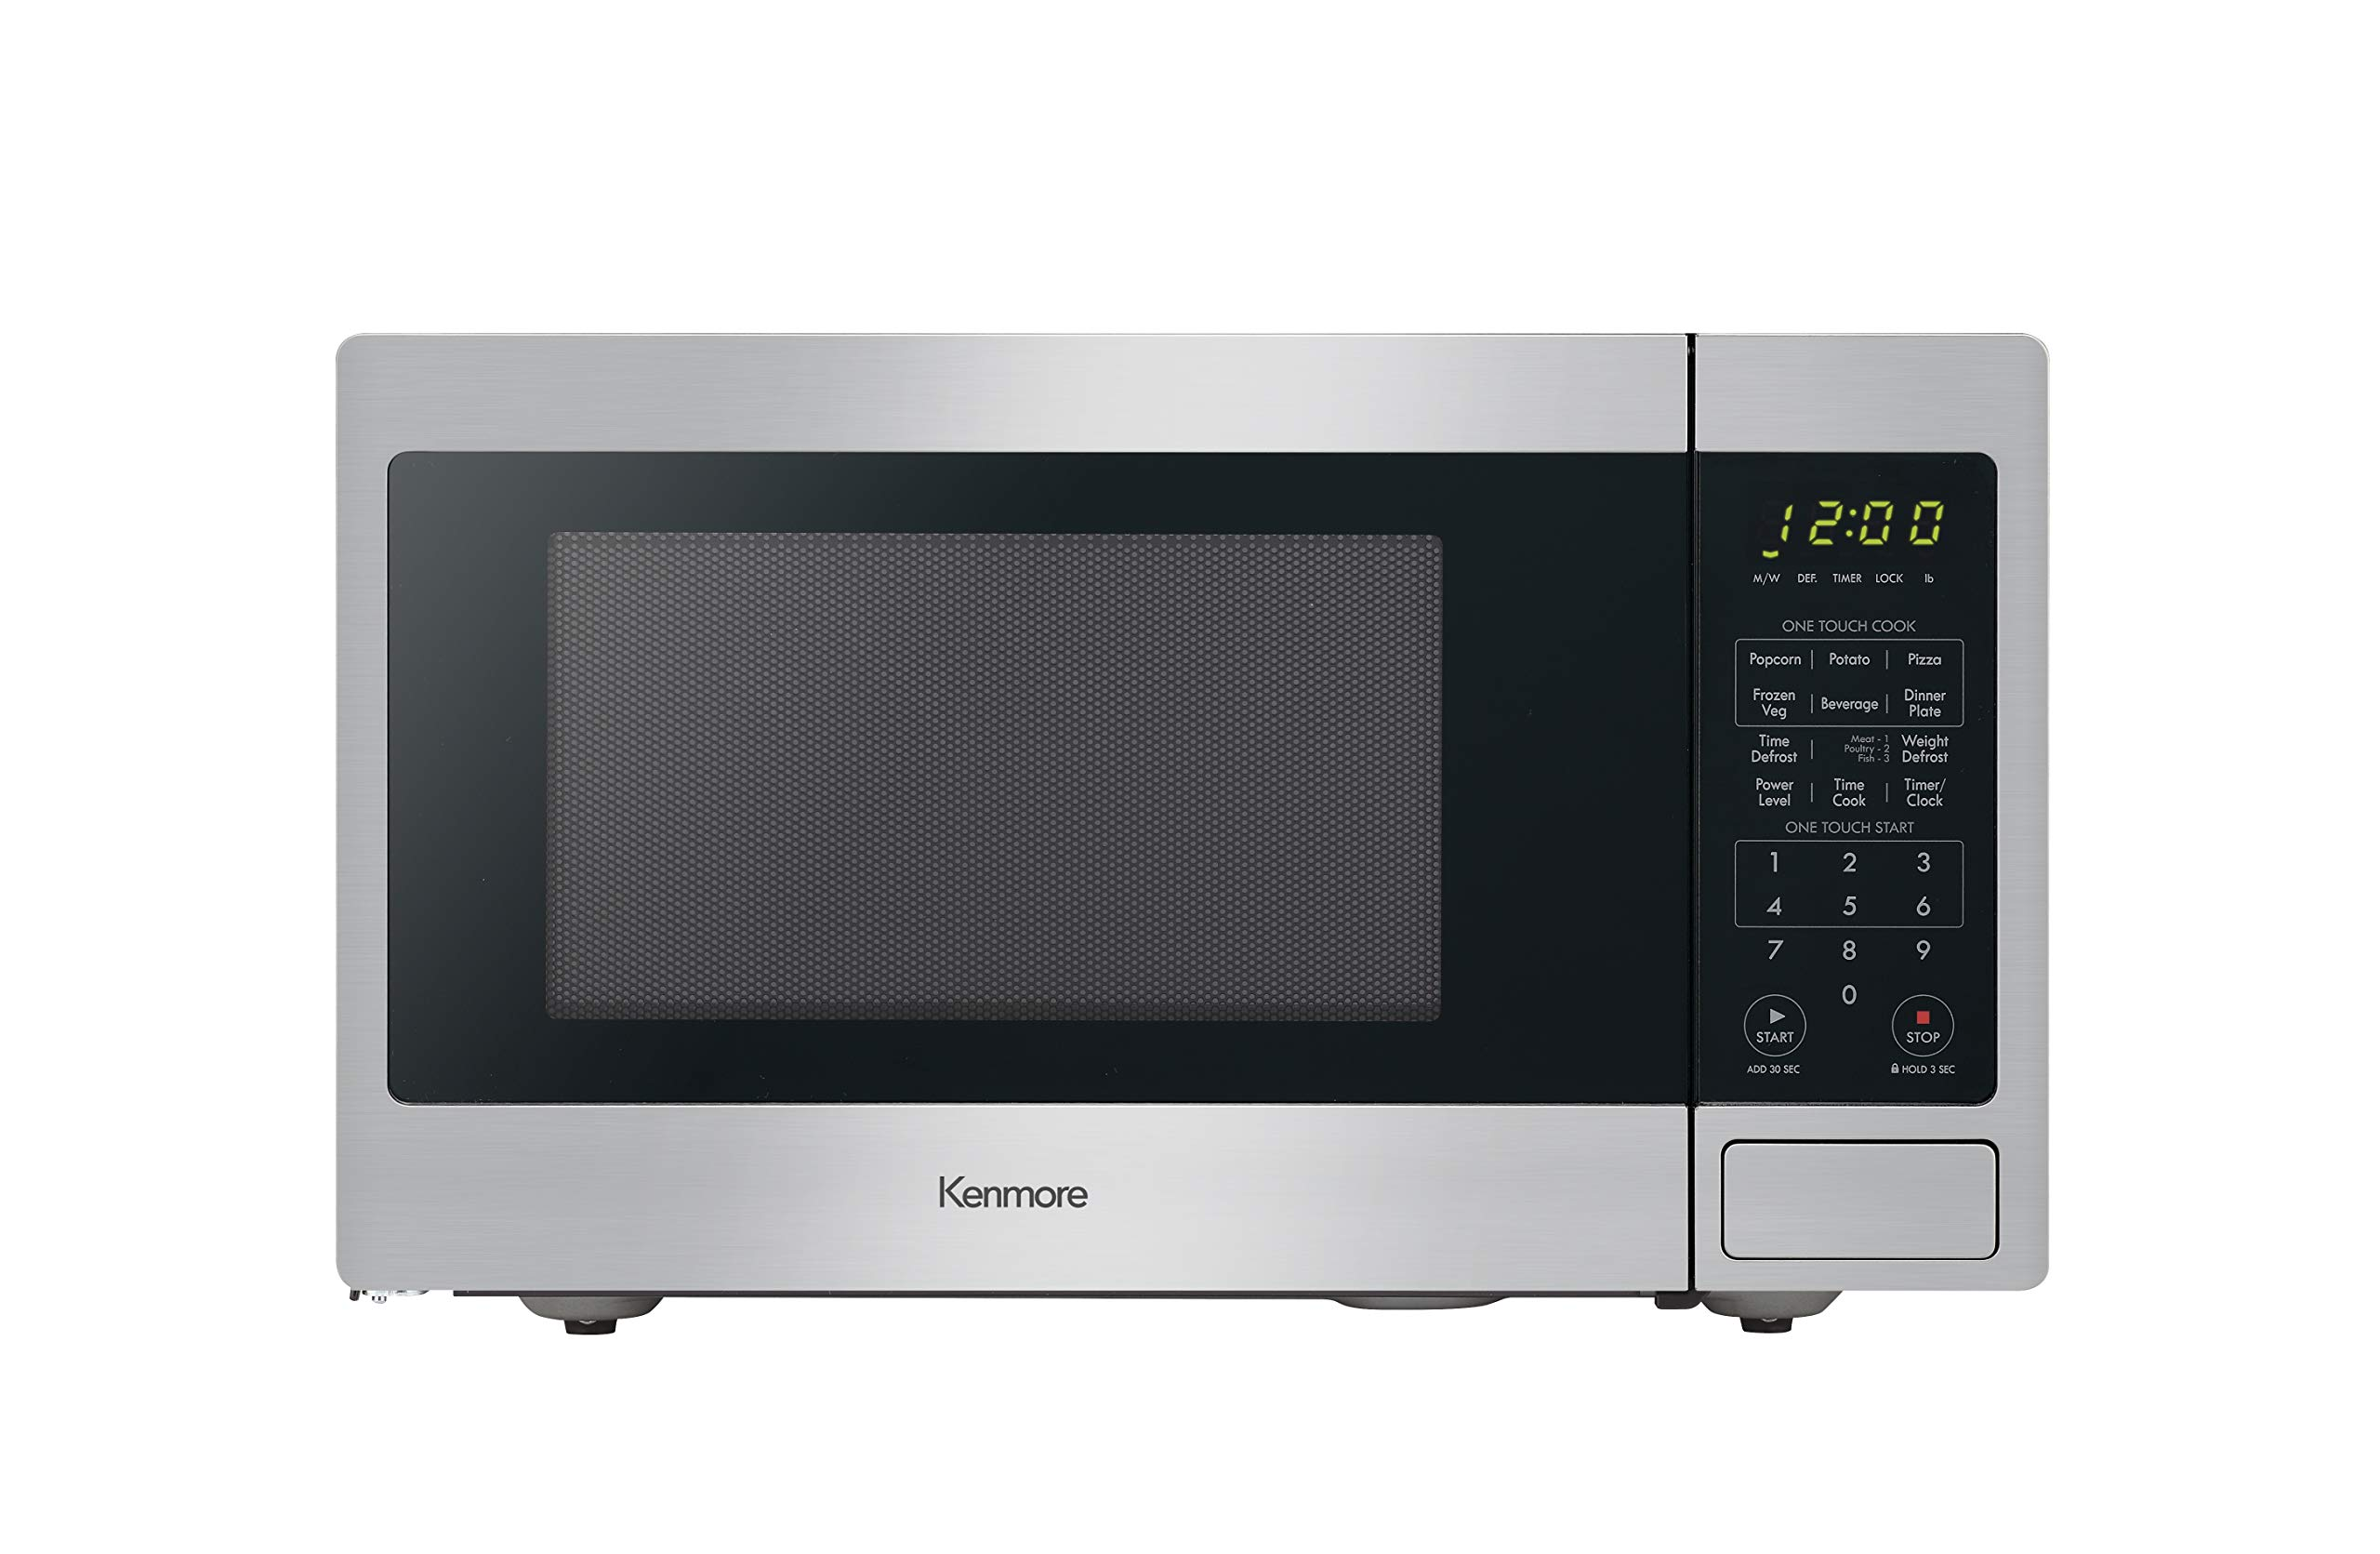 Kenmore 70923 0.9 cu. ft Small Compact 900 Watts Countertop Microwave with 10 Power Settings, 12 Heating Presets, Removable Turntable ADA Compliant, Stainless Steel by Kenmore